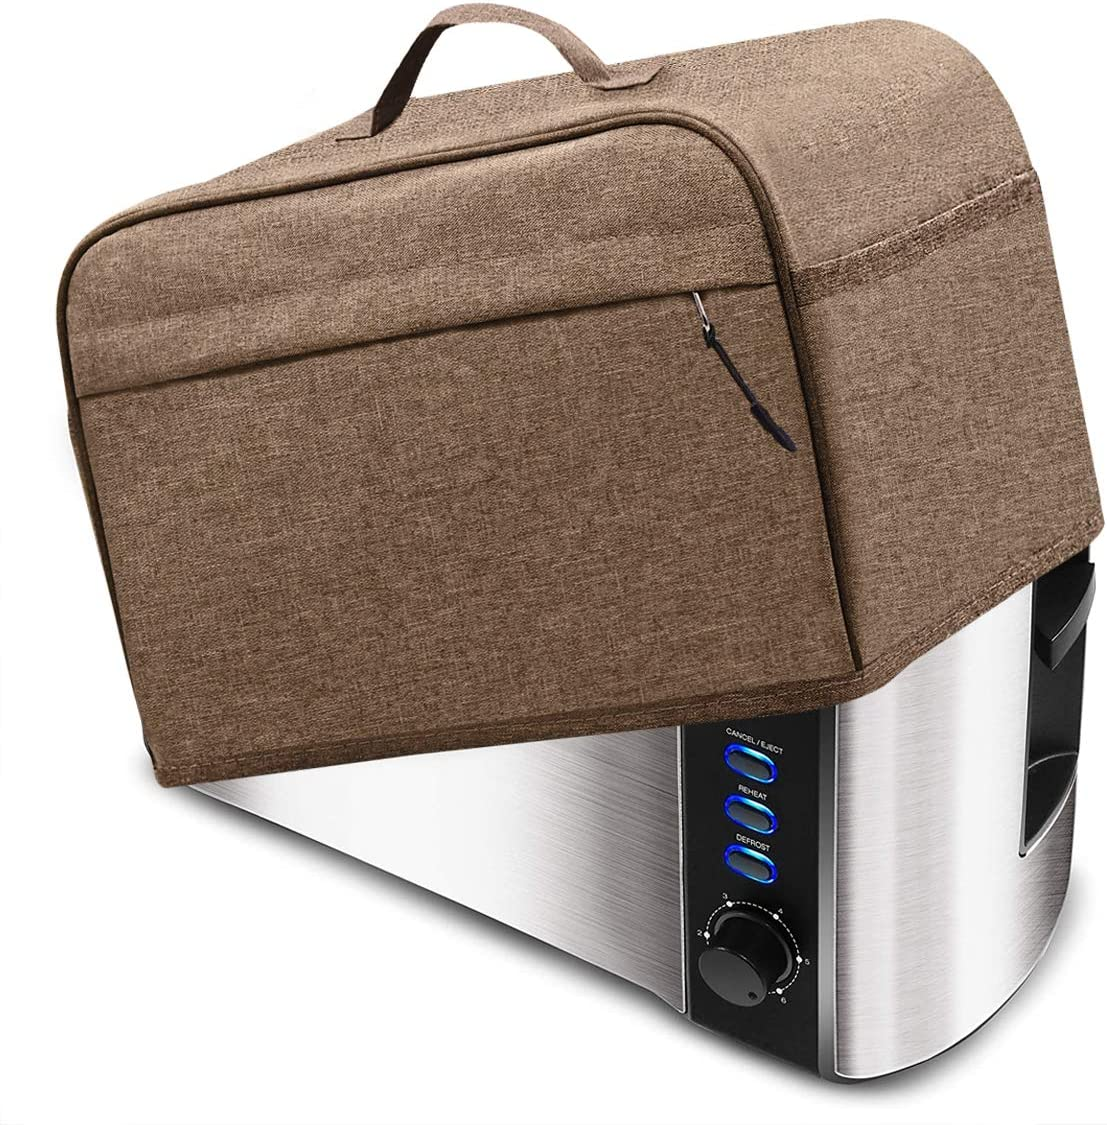 INMUA Toaster Cover for 4 Slice Long Slot (15.5 x 7.5 x 8 inches), Toaster Appliance Cover with Pockets, Dust and Fingerprint Protection (Brown)